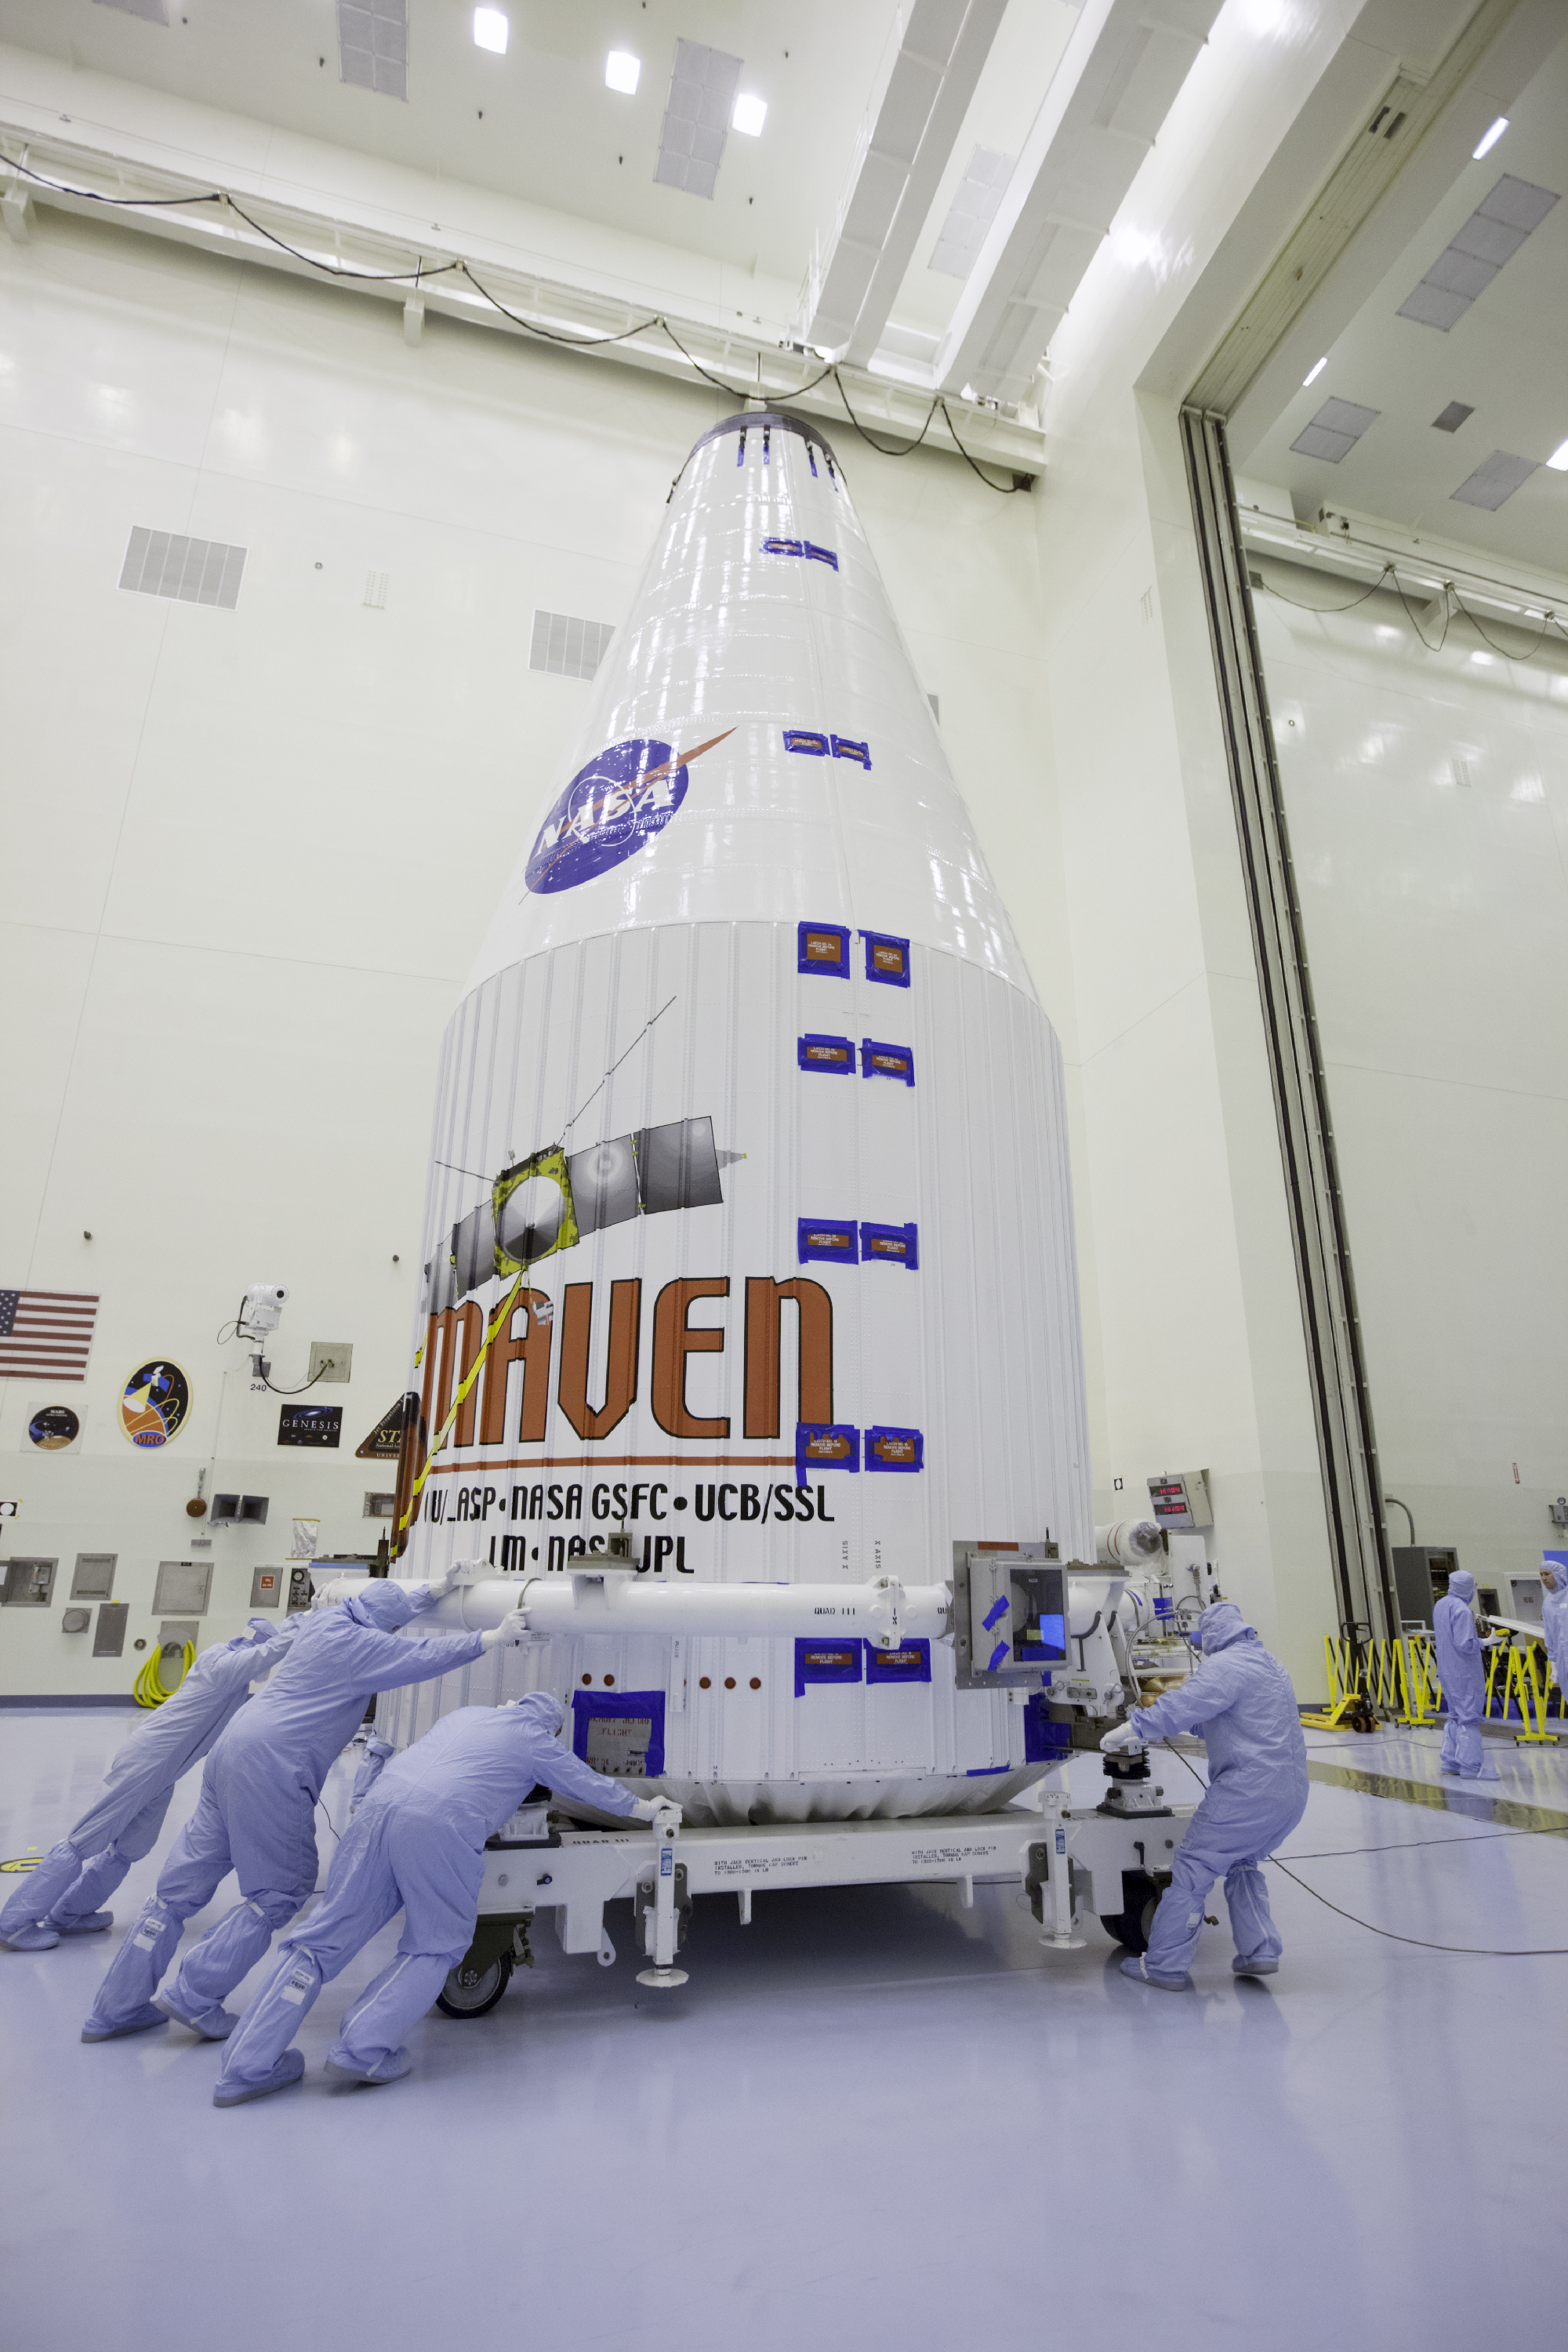 Engineers Move MAVEN Inside Payload Hazardous Servicing Facility